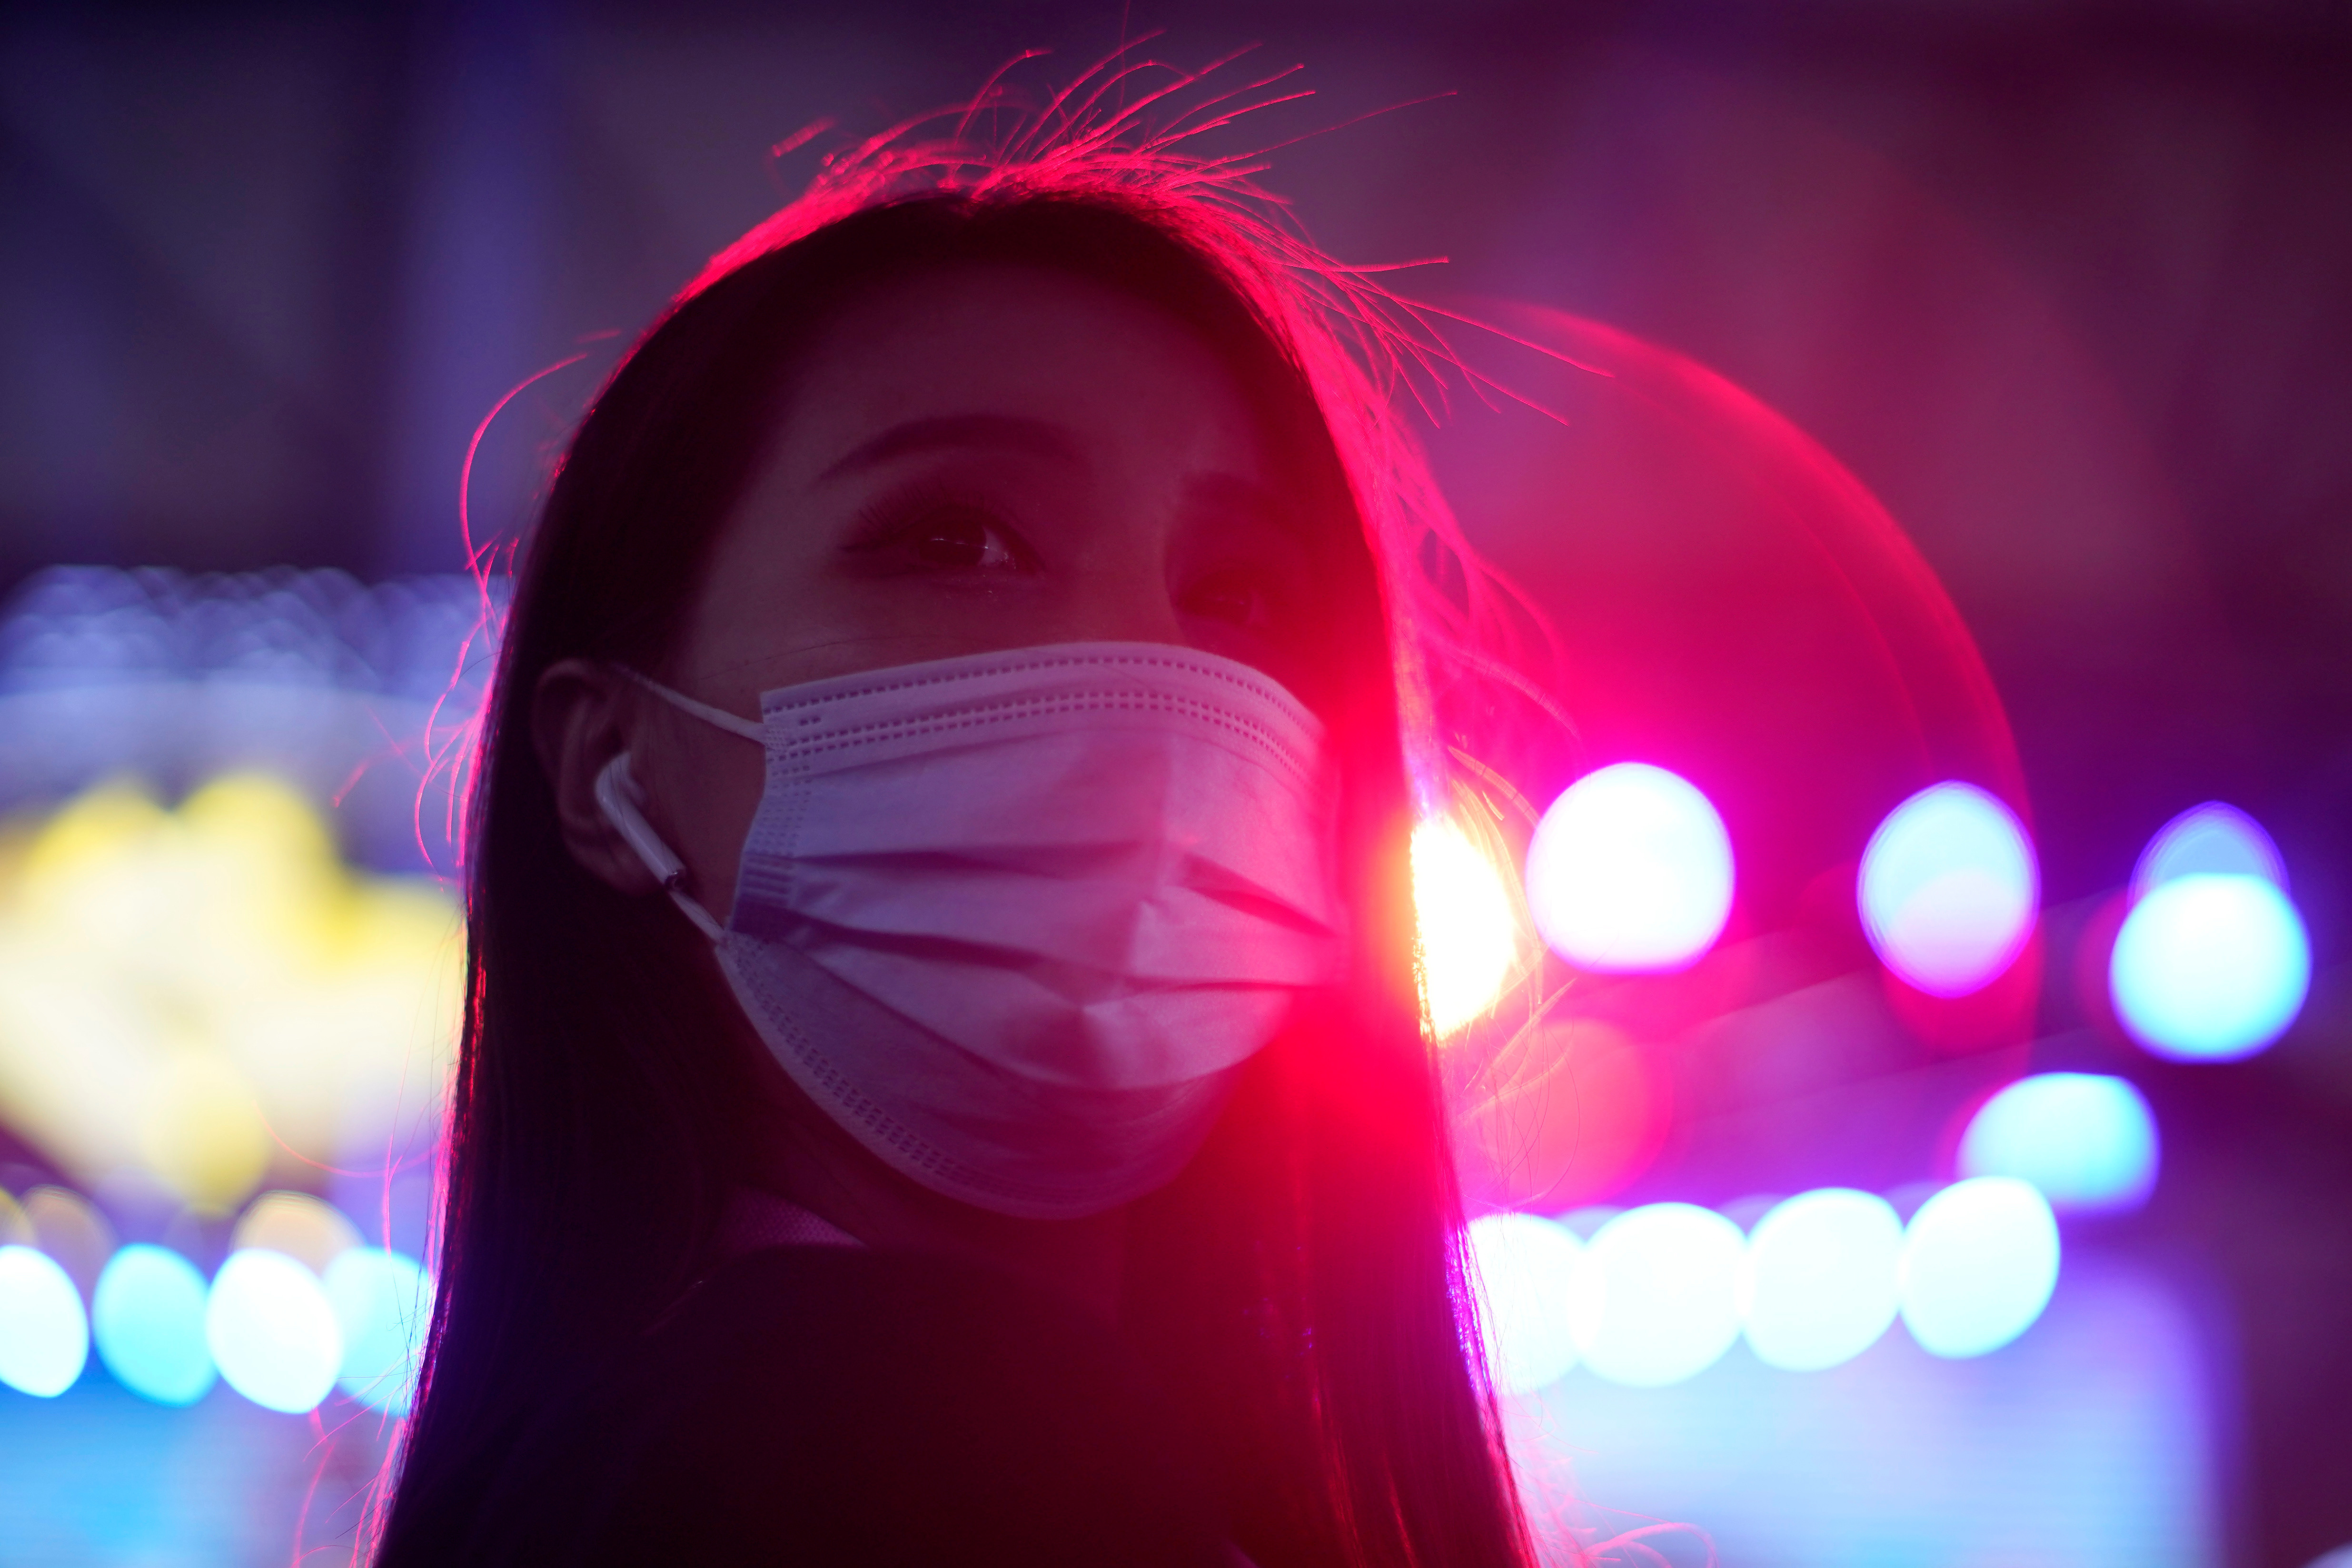 A girl wearing a protective face mask attends the China Digital Entertainment Expo and Conference (ChinaJoy) in Shanghai, following the coronavirus disease (COVID-19) outbreak, China July 31, 2020. REUTERS/Aly Song - RC264I9YJ5B3